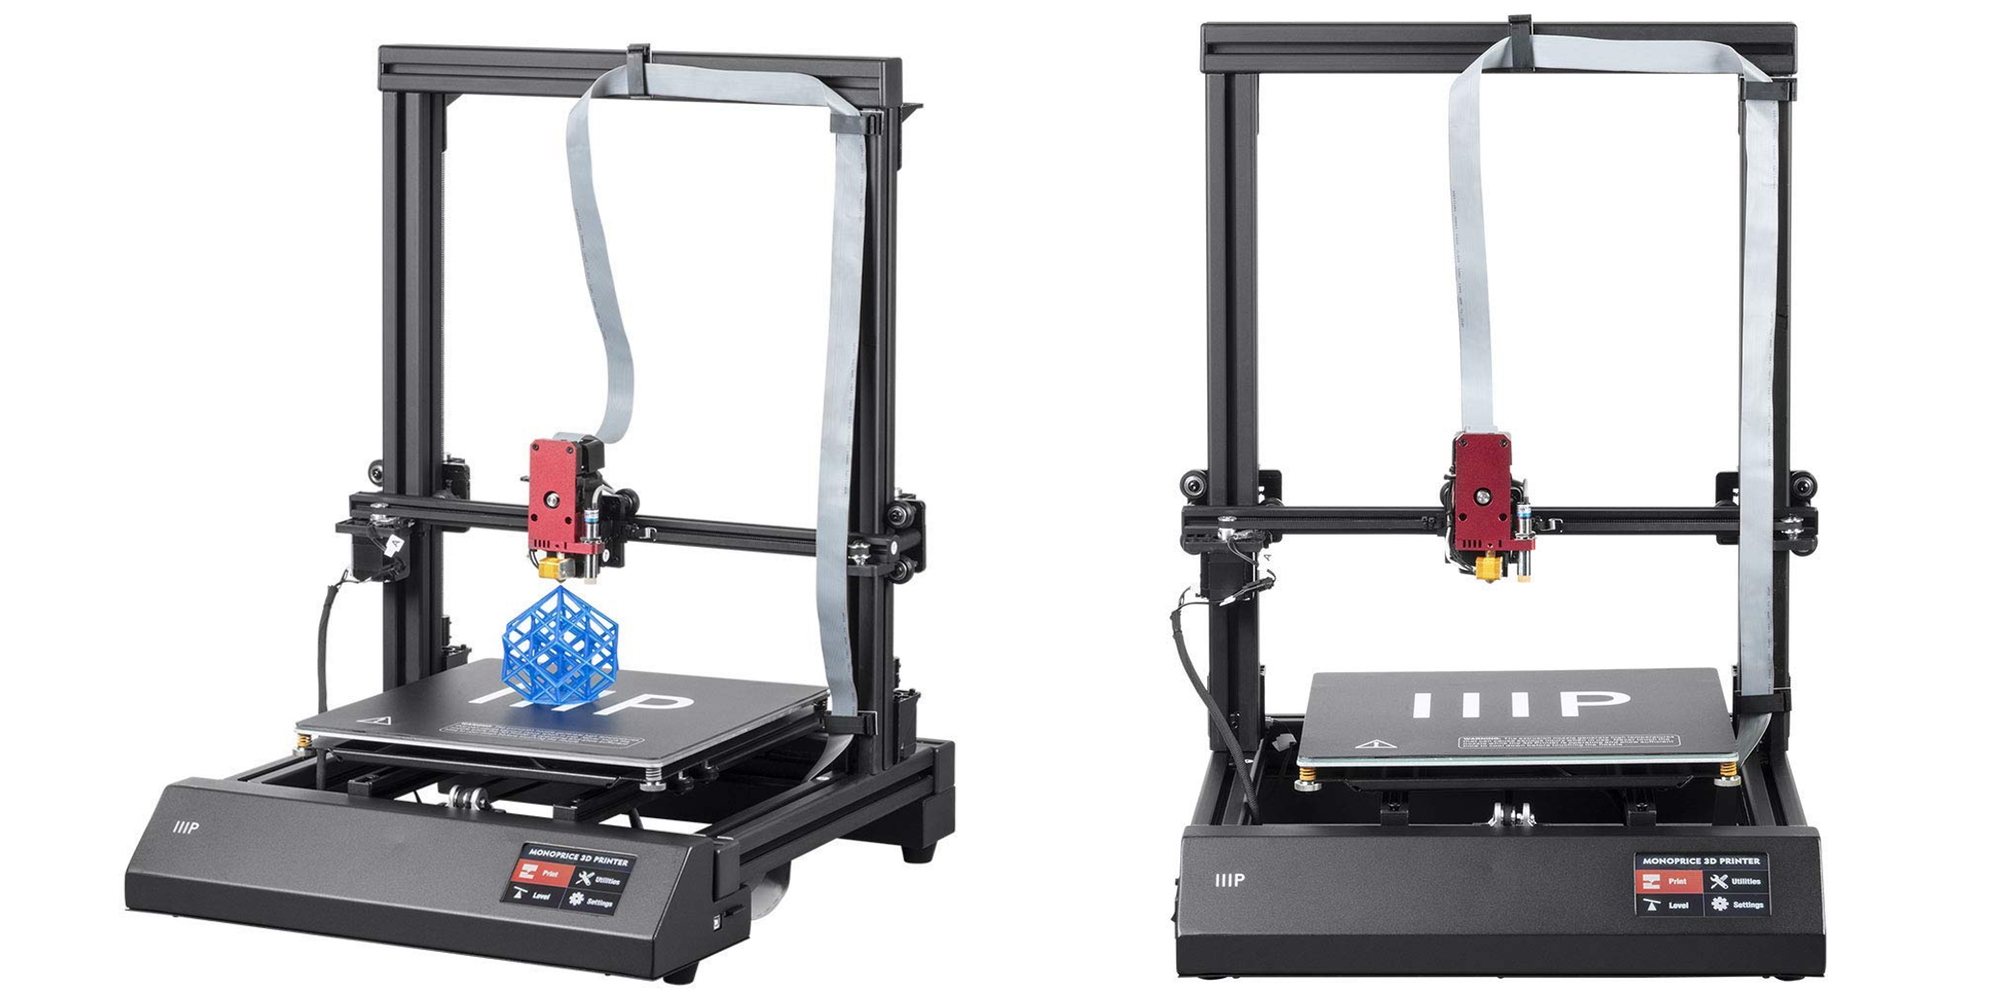 Monoprices Maker Pro 3d Printer Has An Auto Leveling Bed Is At A